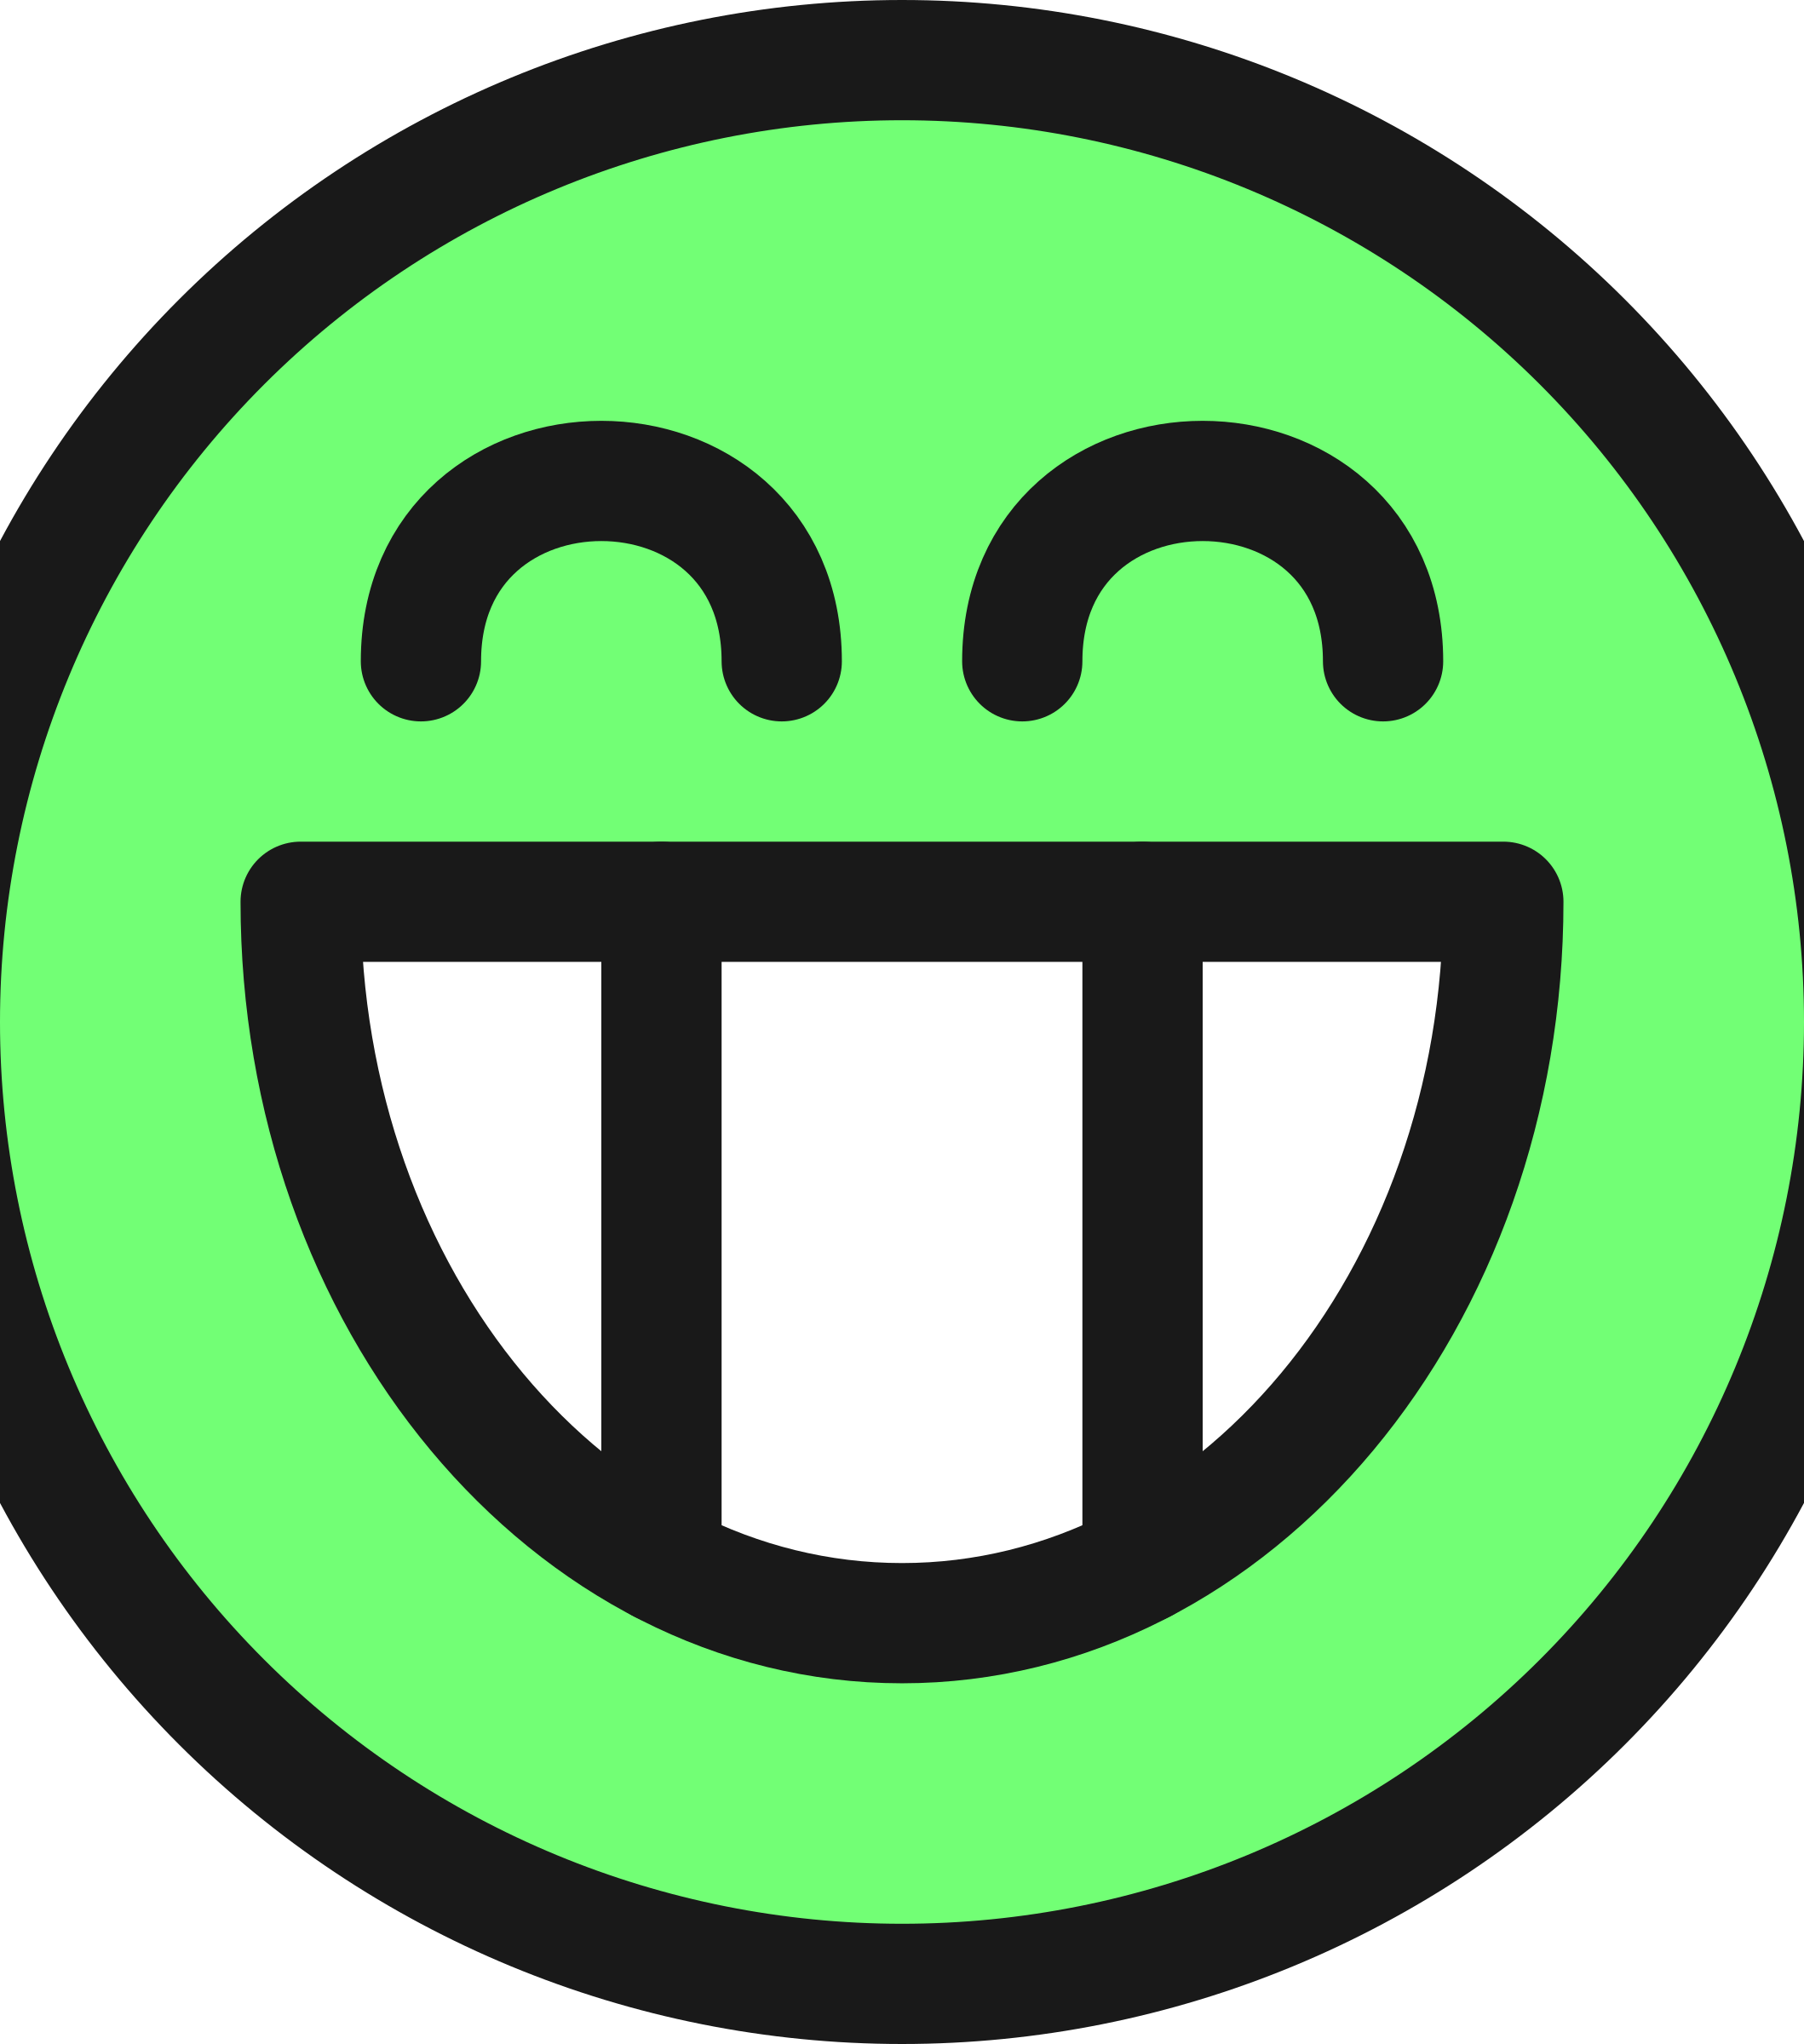 flat grin smiley emotion icon emoticon by qubodup